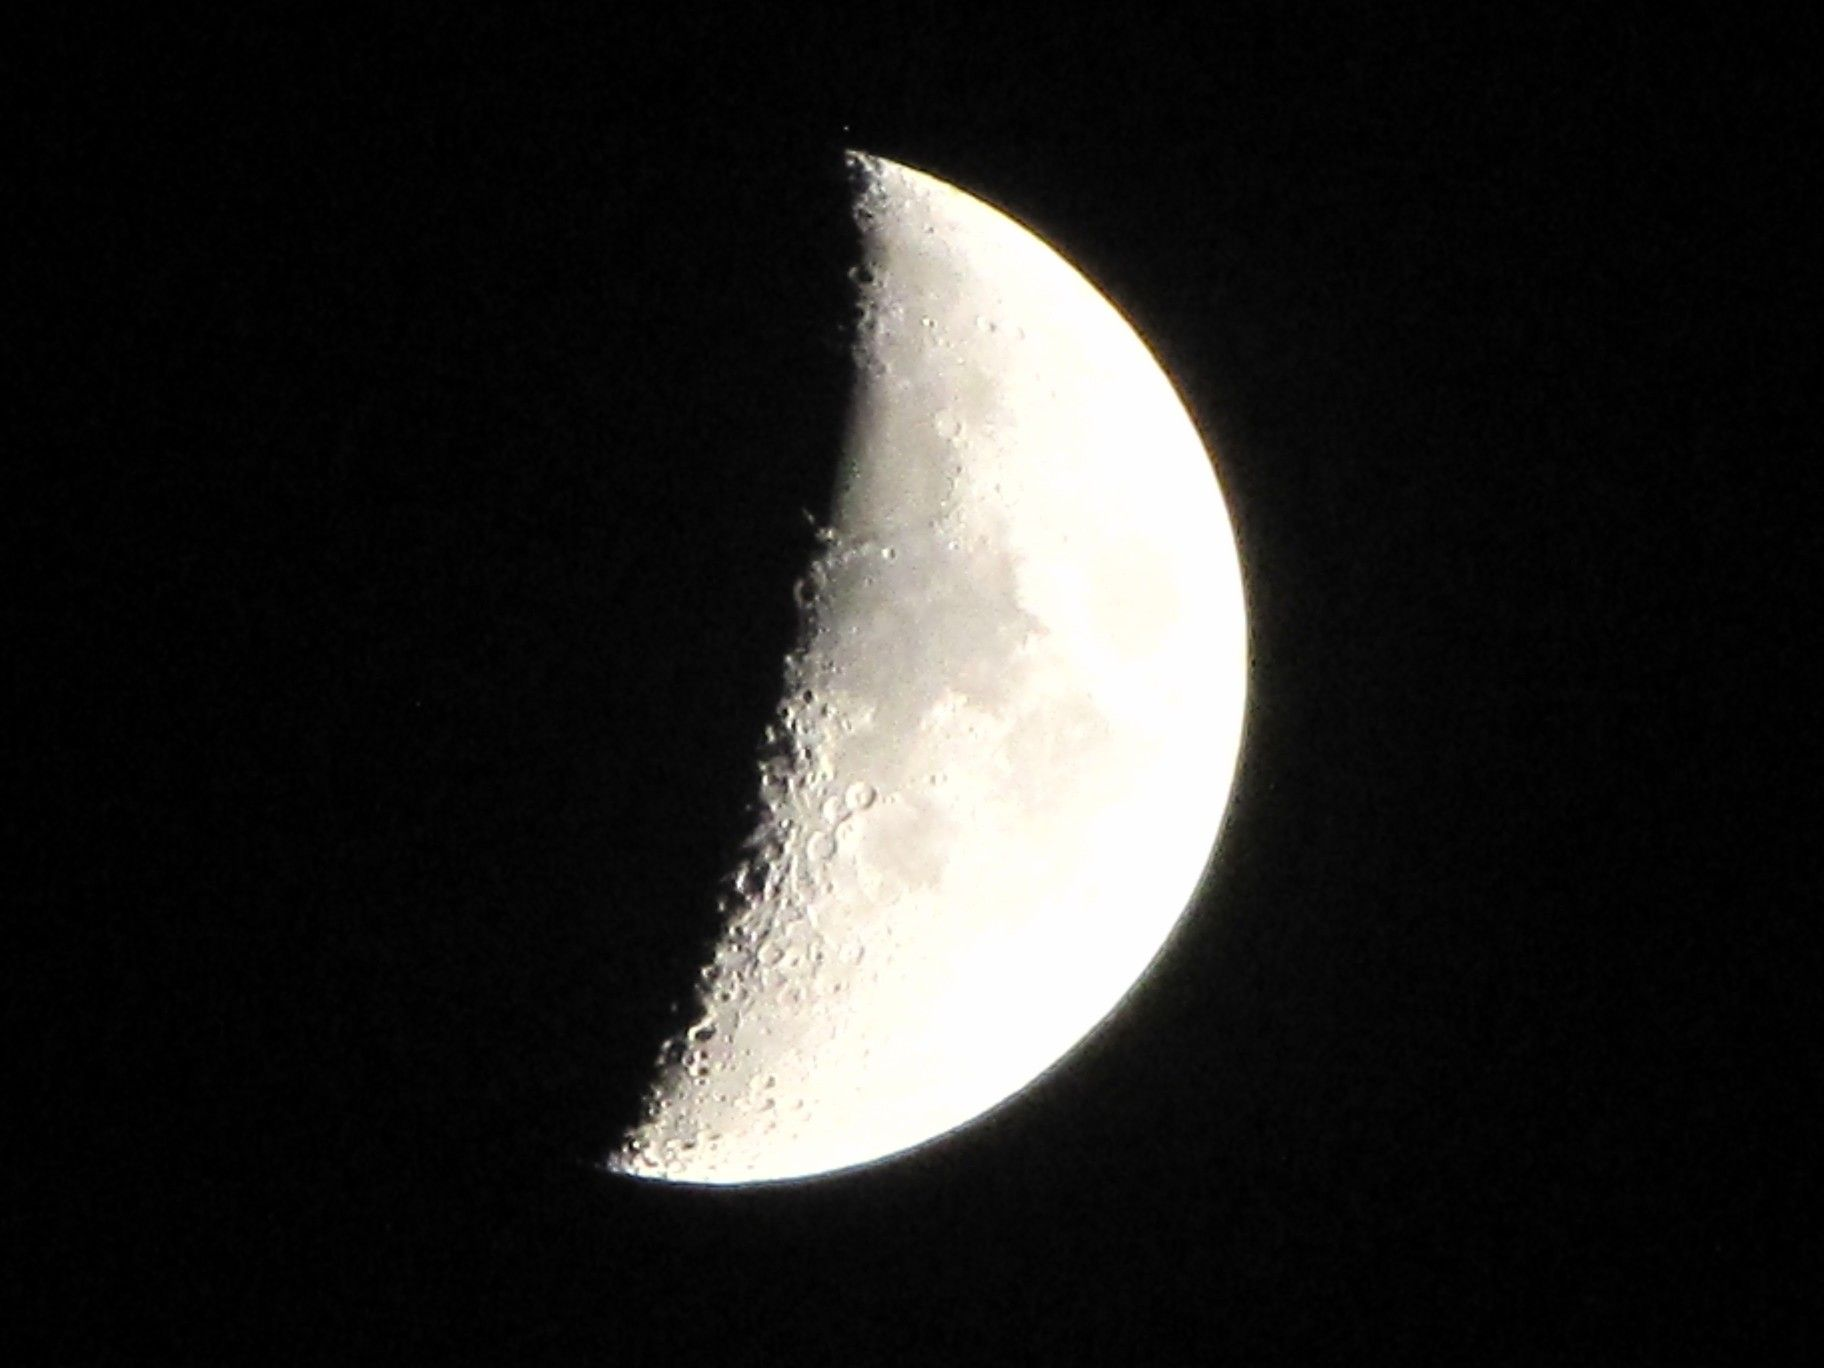 Waxing crescent - Cuarto creciente. | Simple Photography | Pinterest